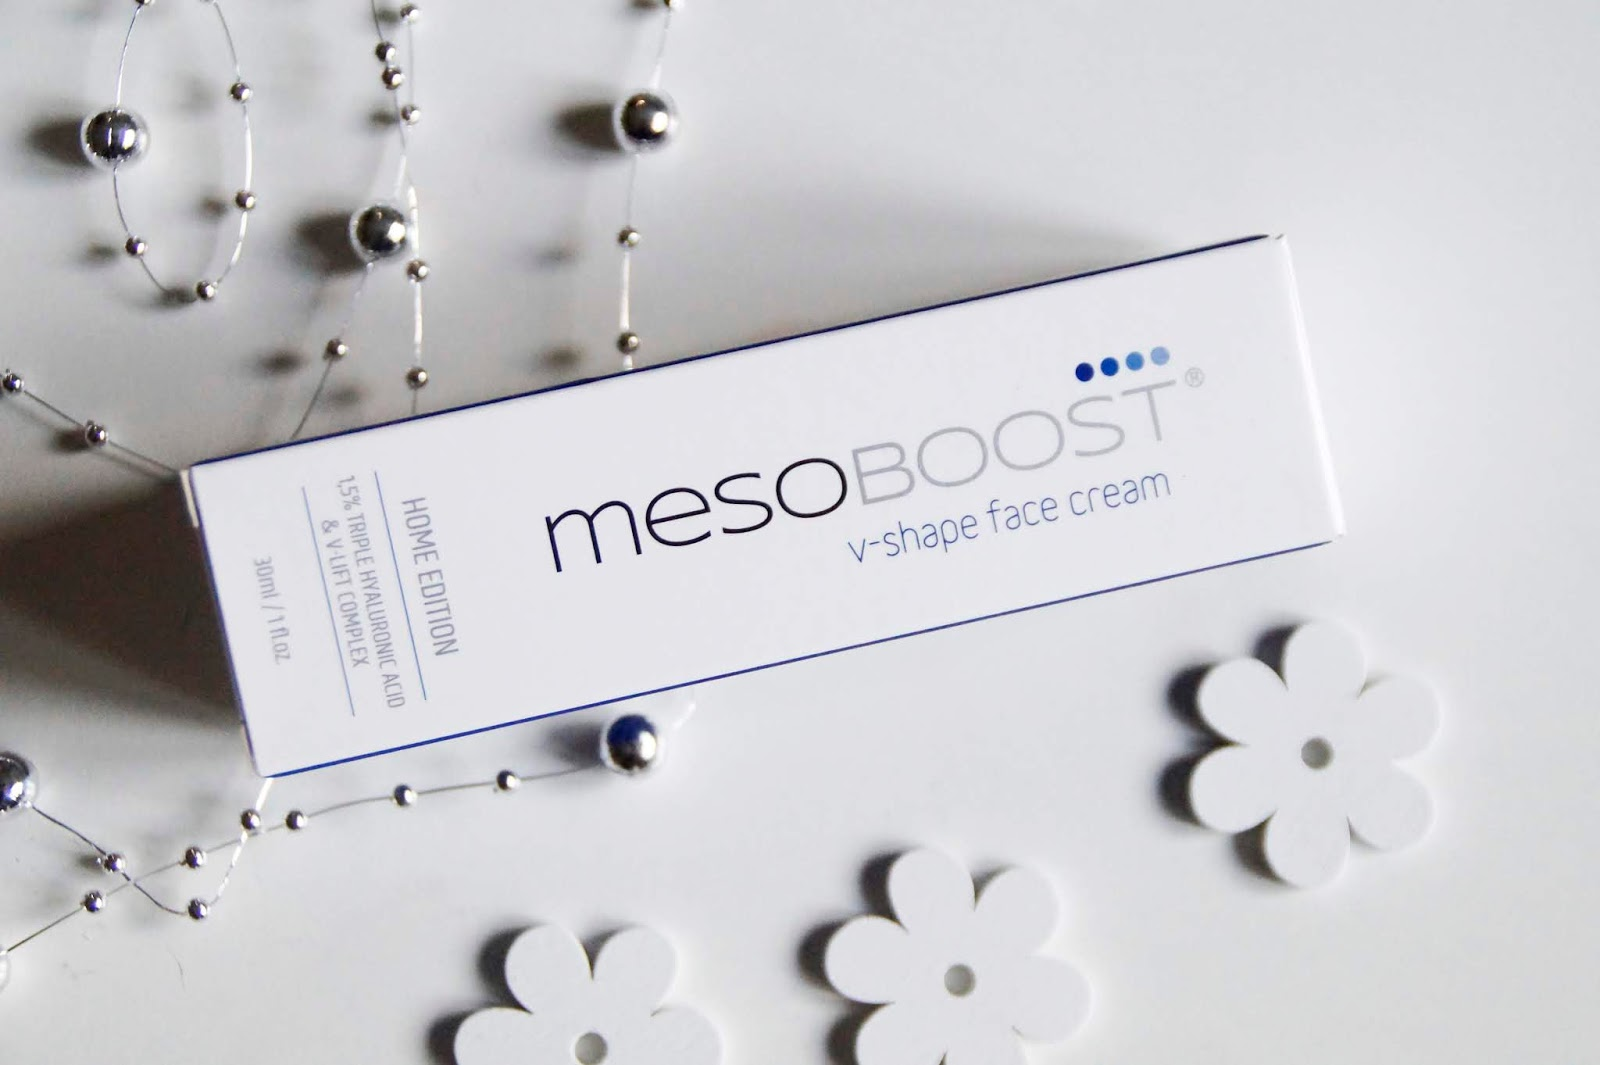 MESOBOOST® V-SHAPE FACE CREAM